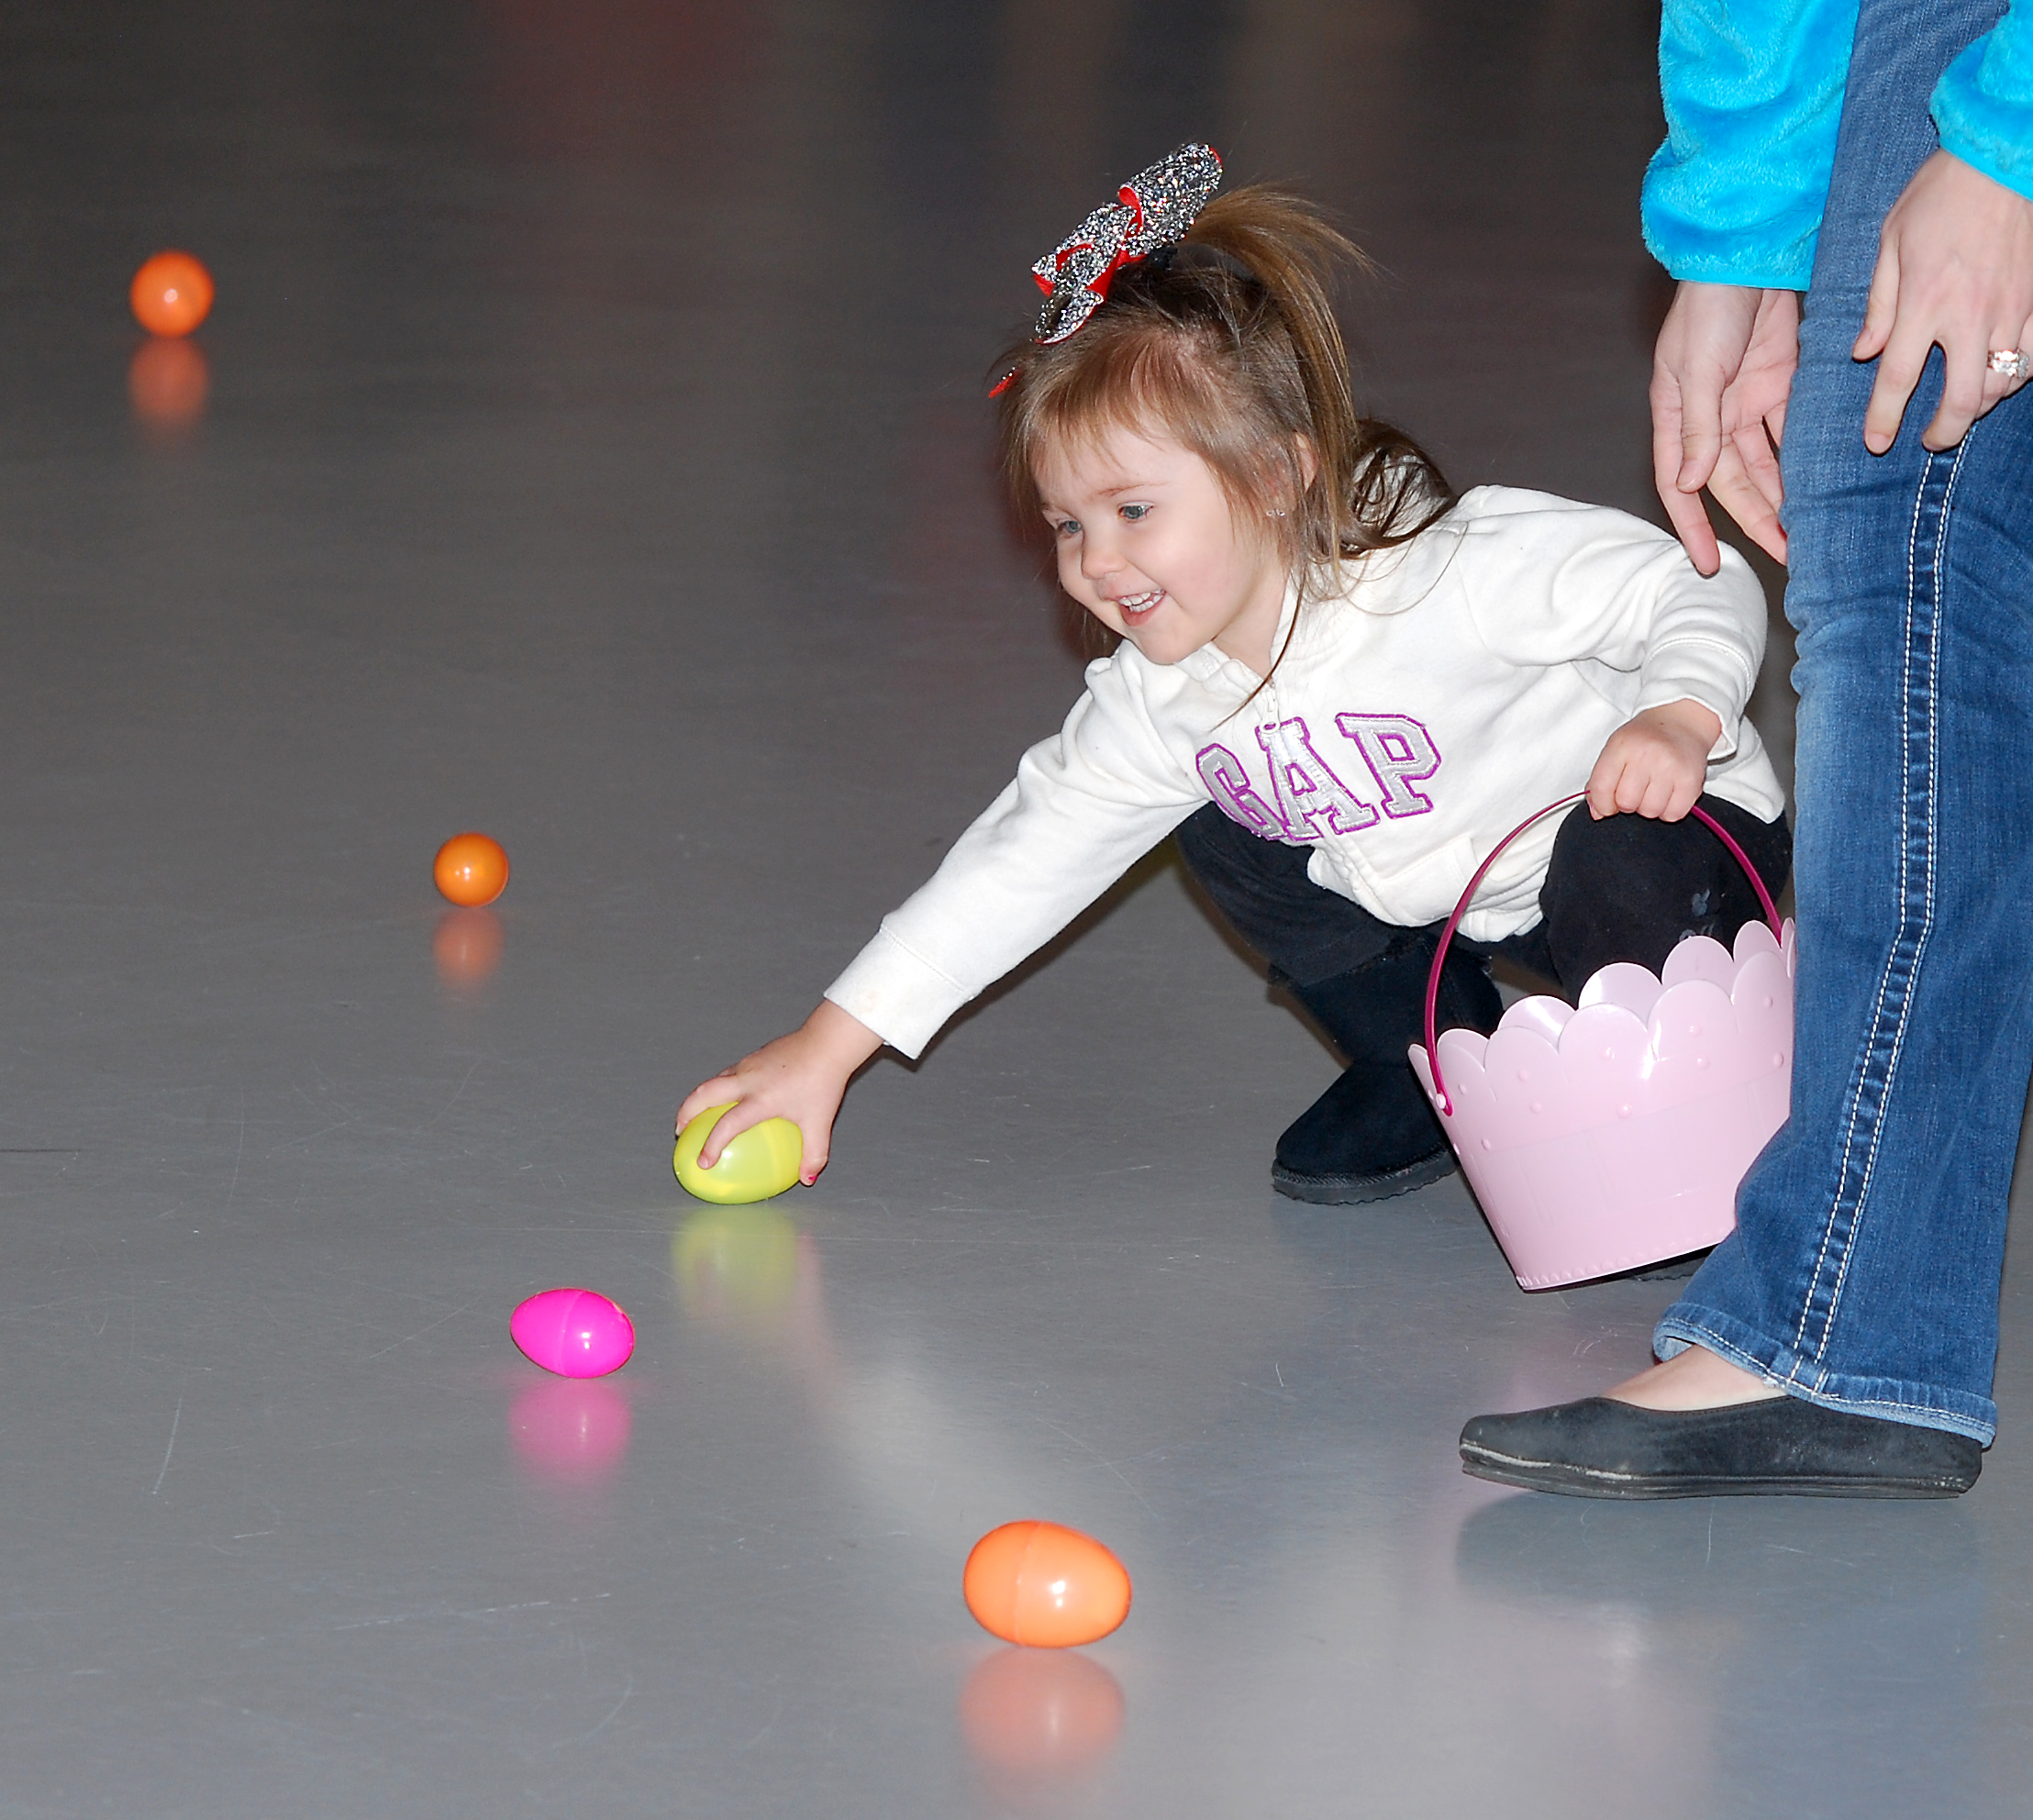 Paislee Tuell, 2, grabs an egg inside the Hamilton County 4-H Exhibition Center during last year's community egg hunt. (File photo)